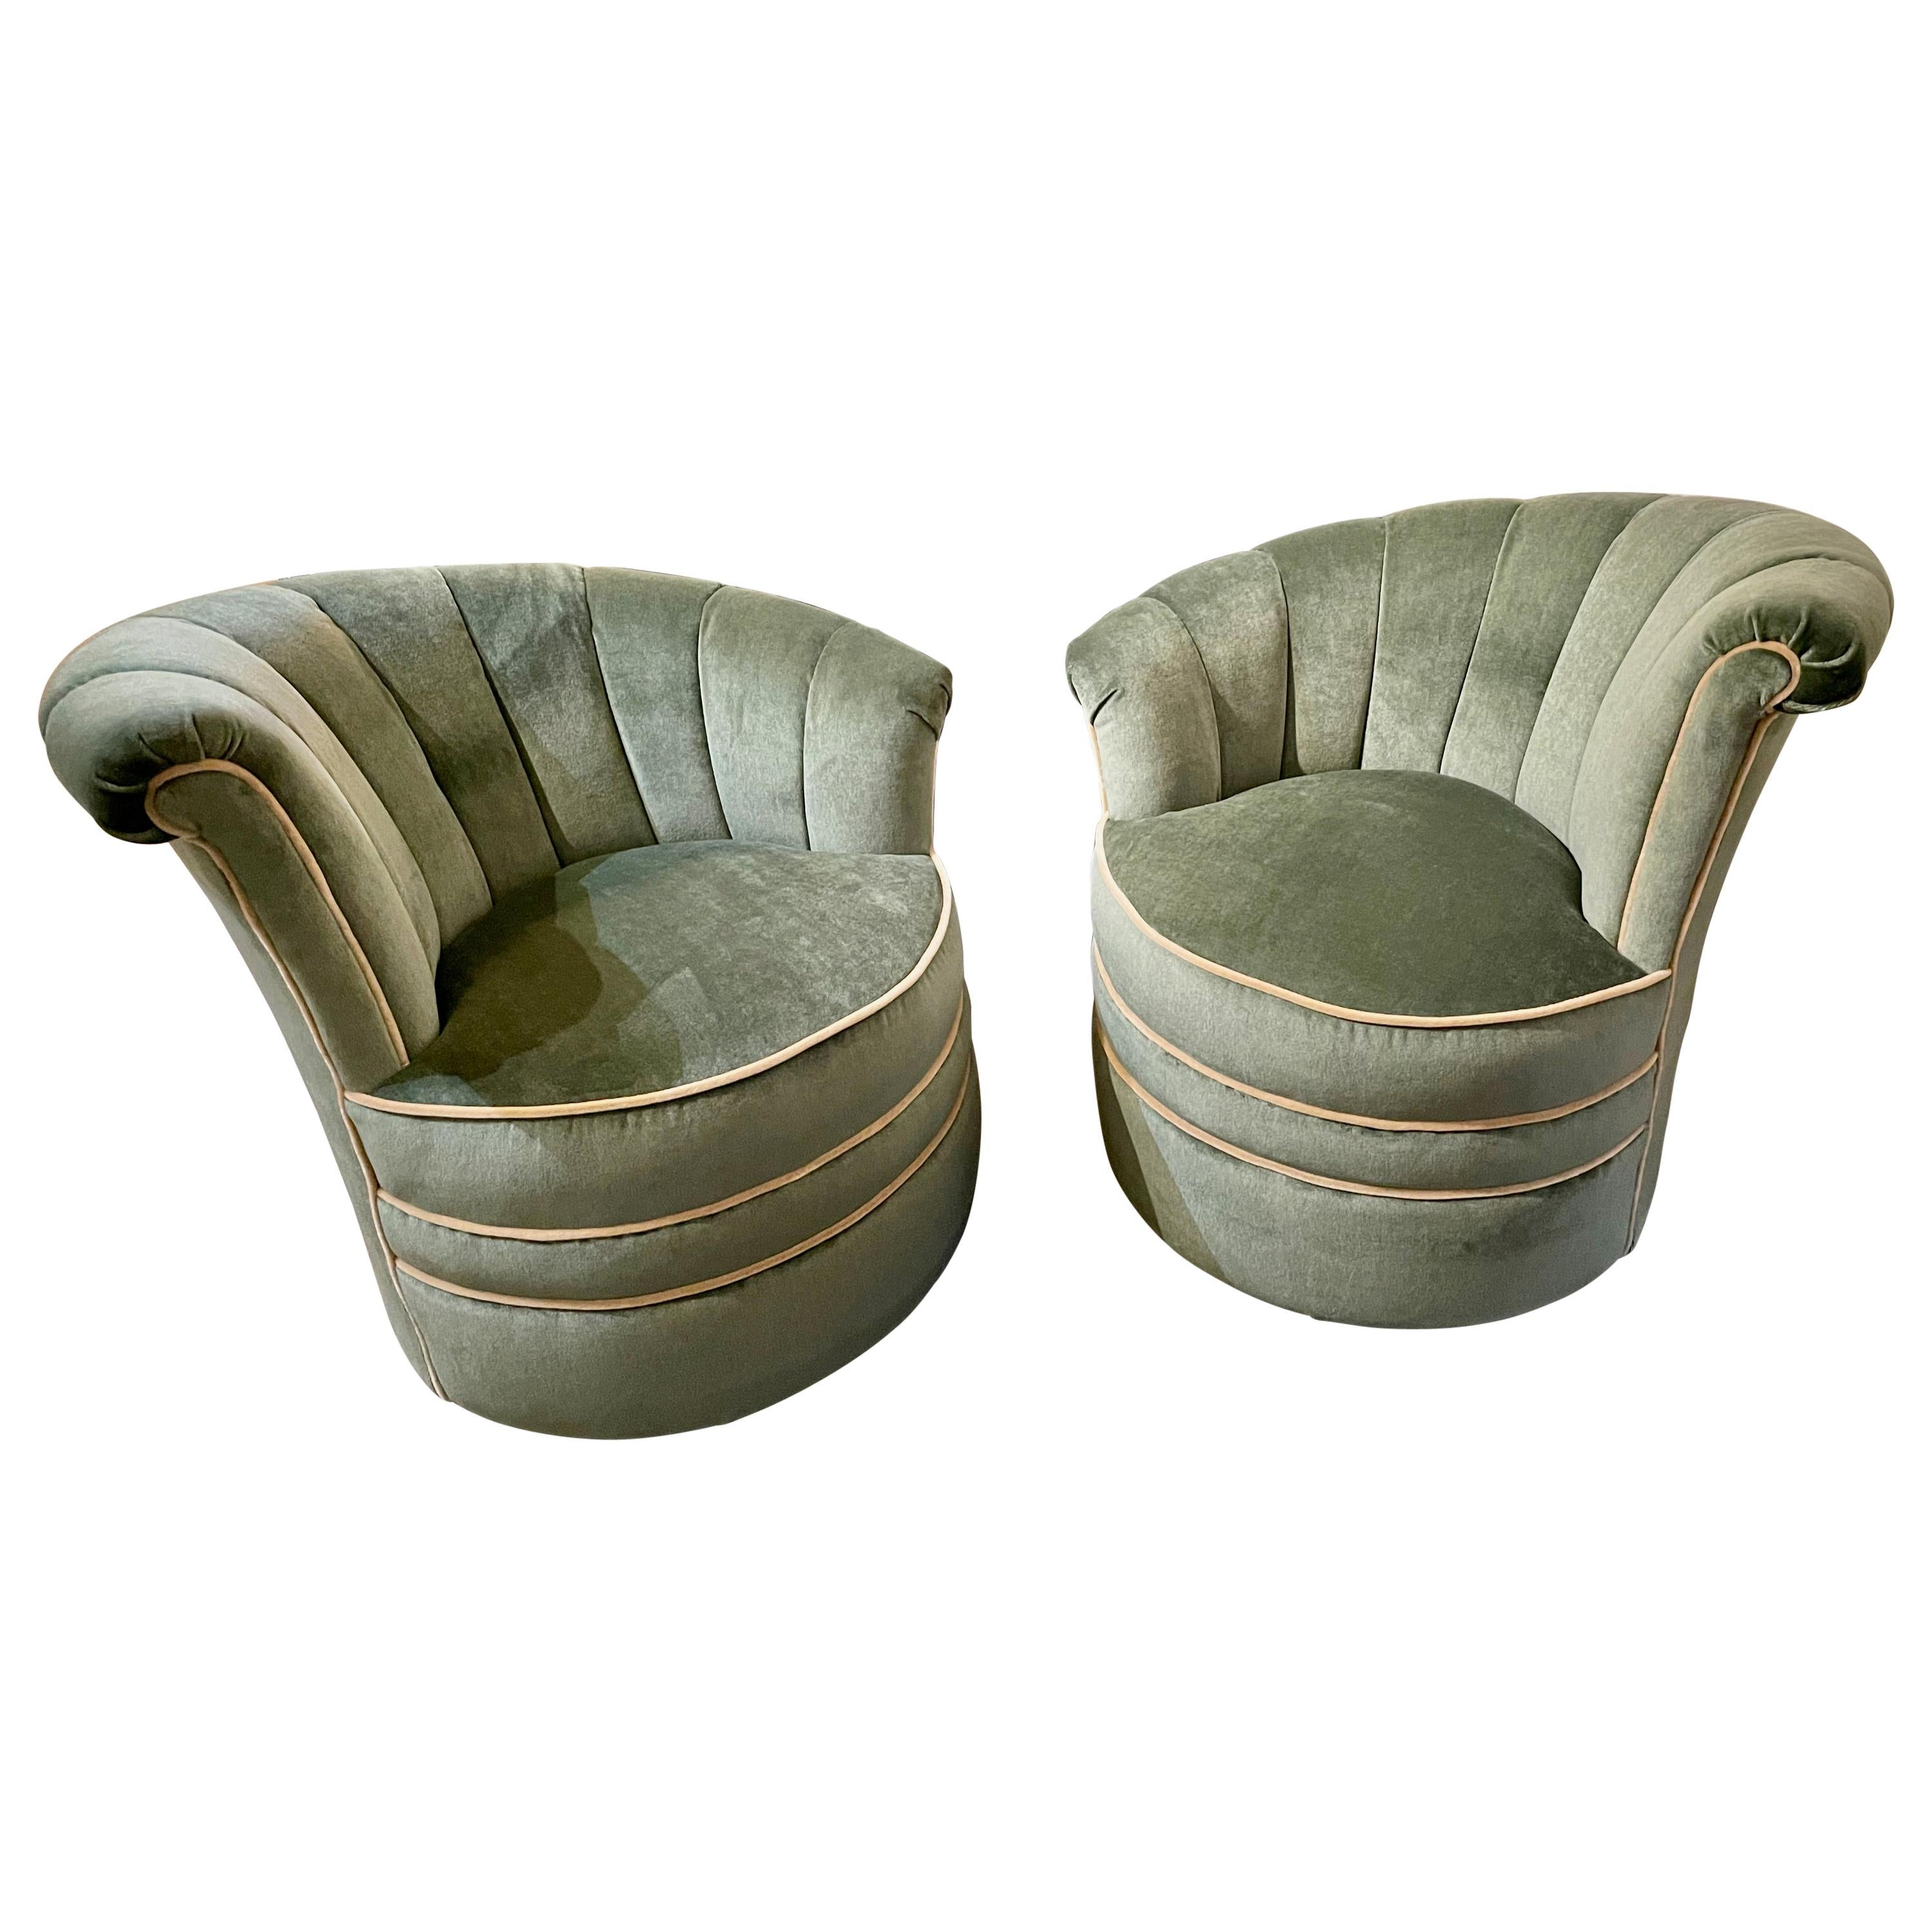 Art Deco Channel Back Swivel Mohair Chairs